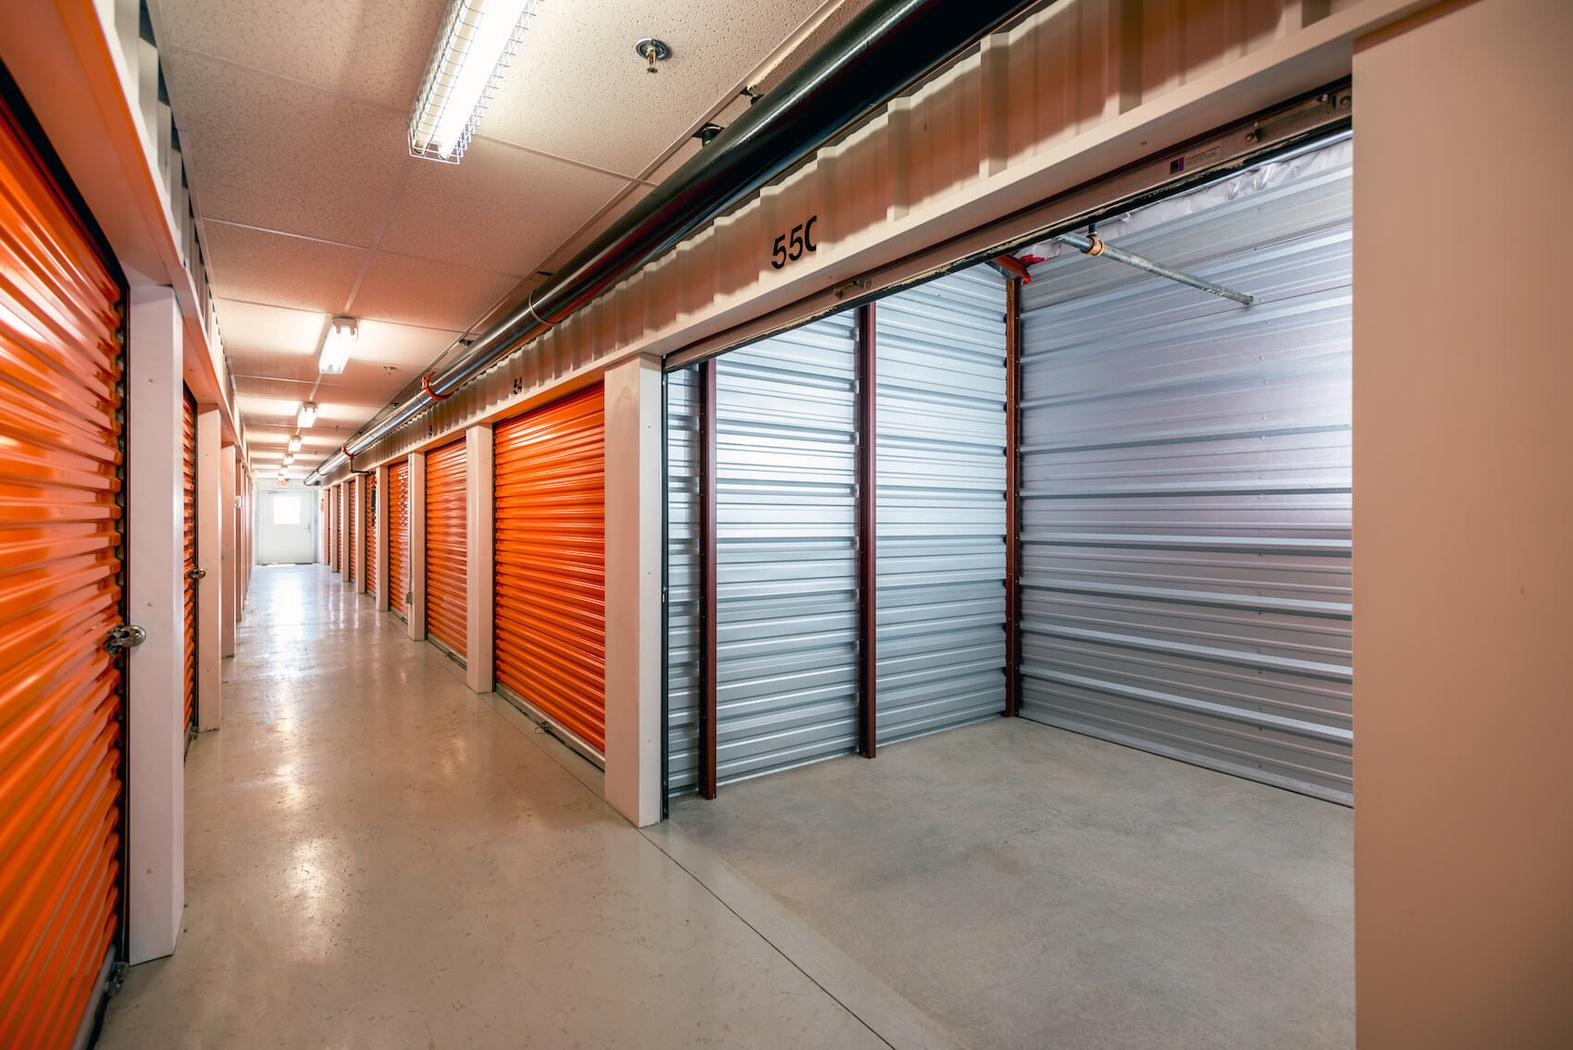 Rent Halton Hills storage units at 7954 Winston Churchill Blvd. We offer a wide-range of affordable self storage units and your first 4 weeks are free!